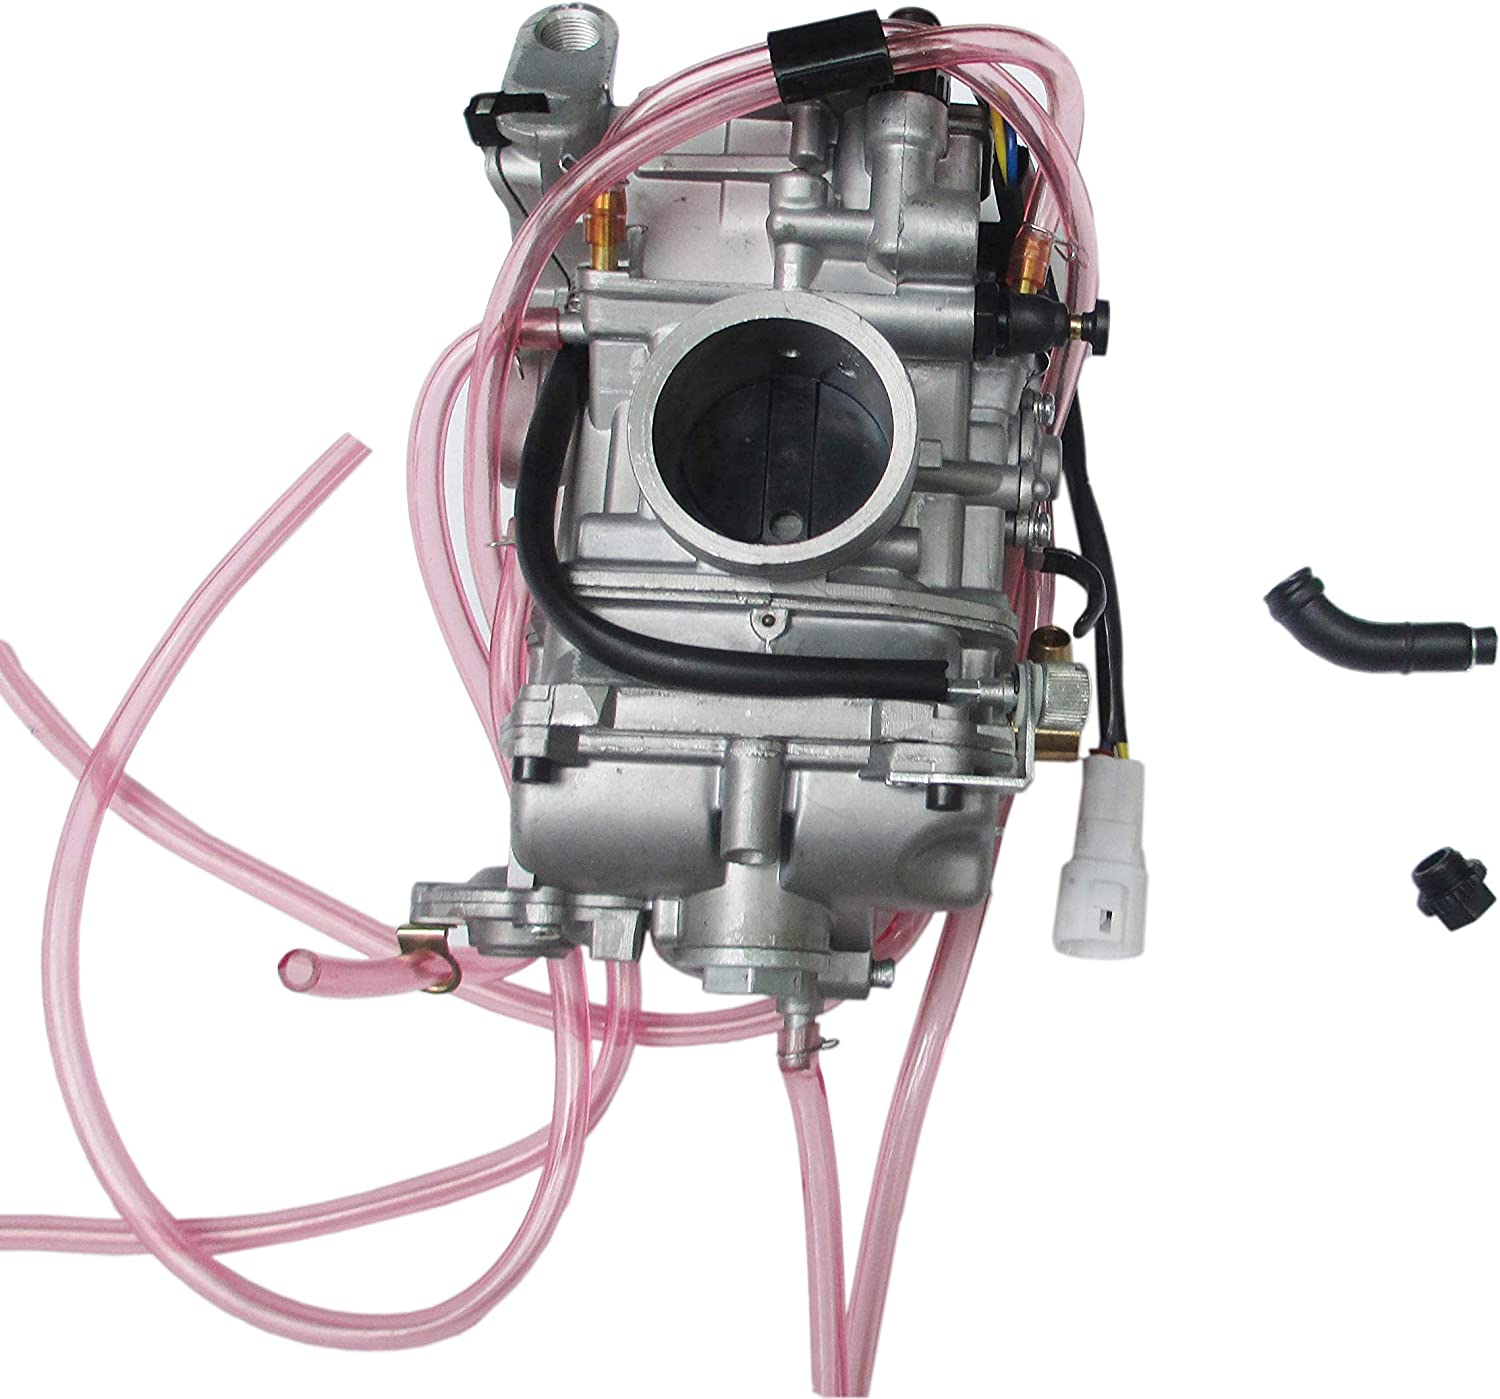 Gxcdizx OFFer Premium Carburetor for MOTORCYCLE WIN 450 service XC-F 2006-2009